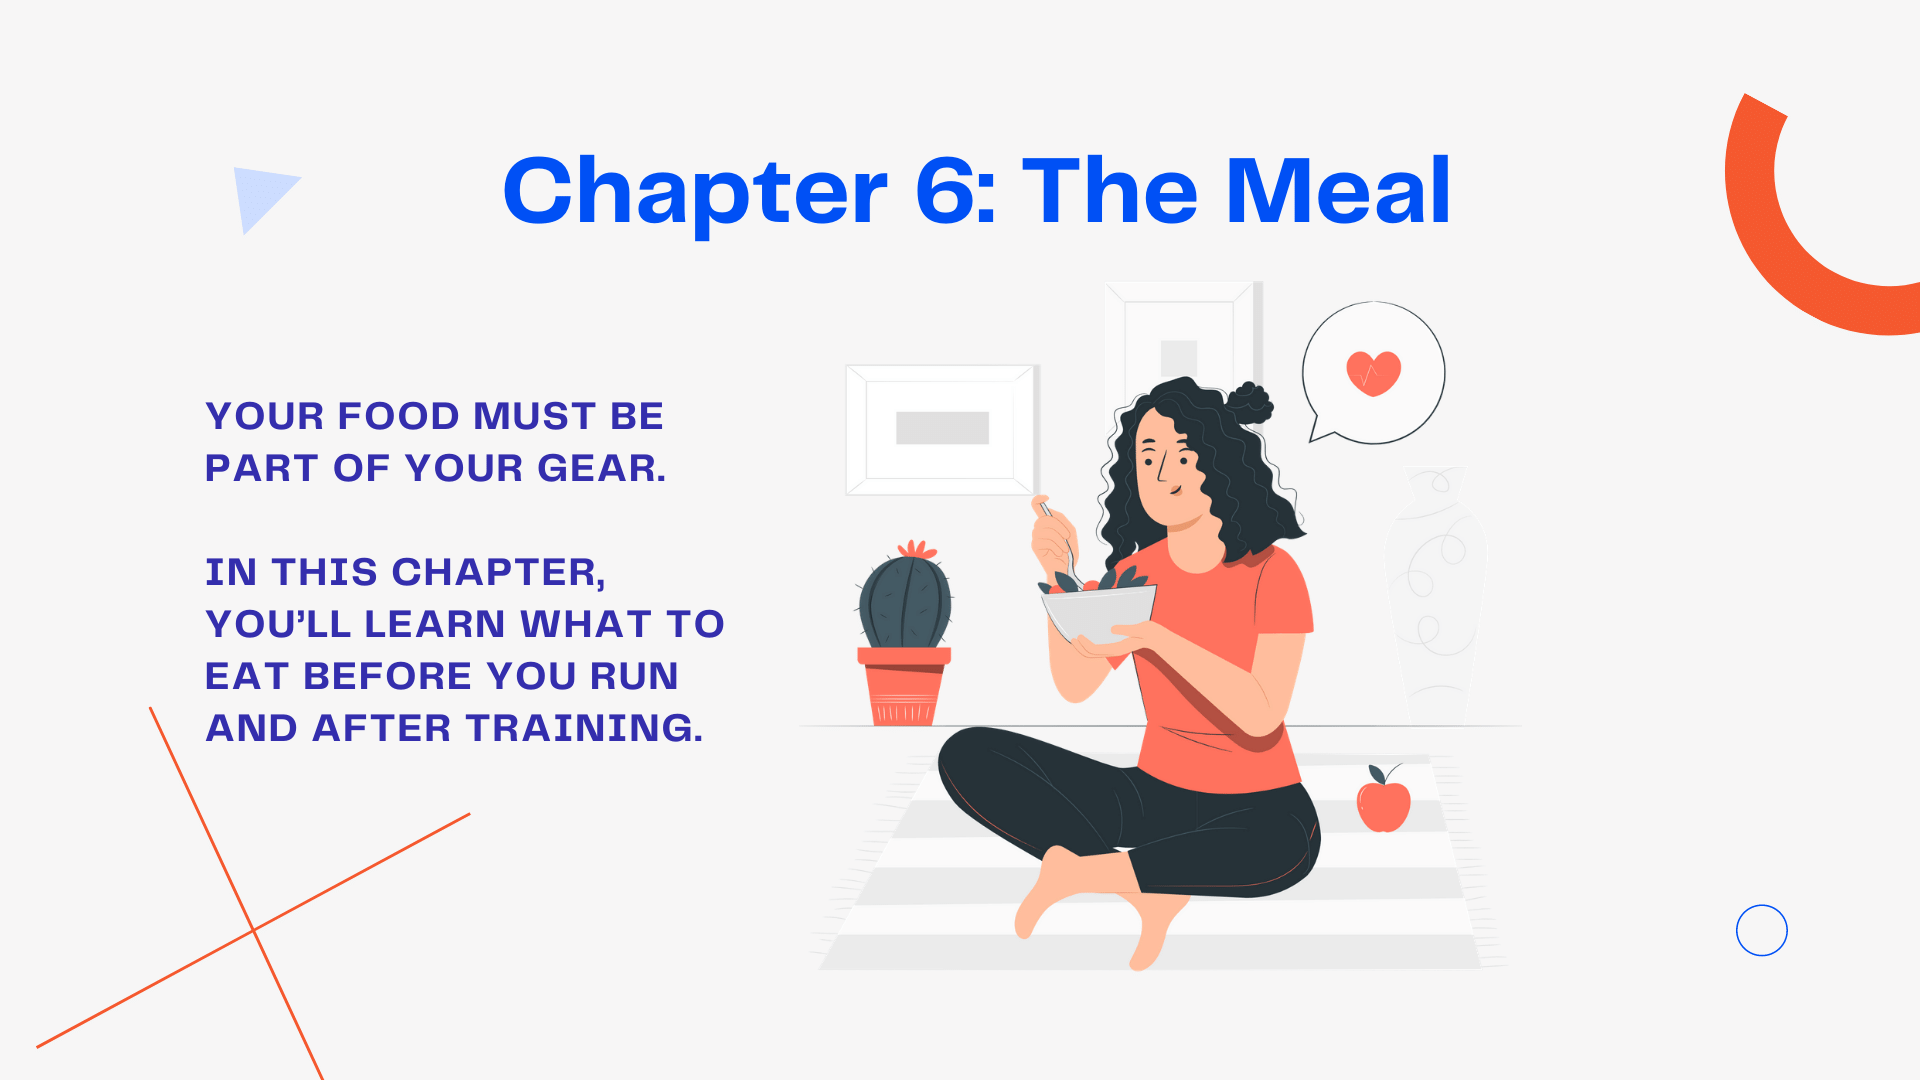 Chapter 6: The Meal